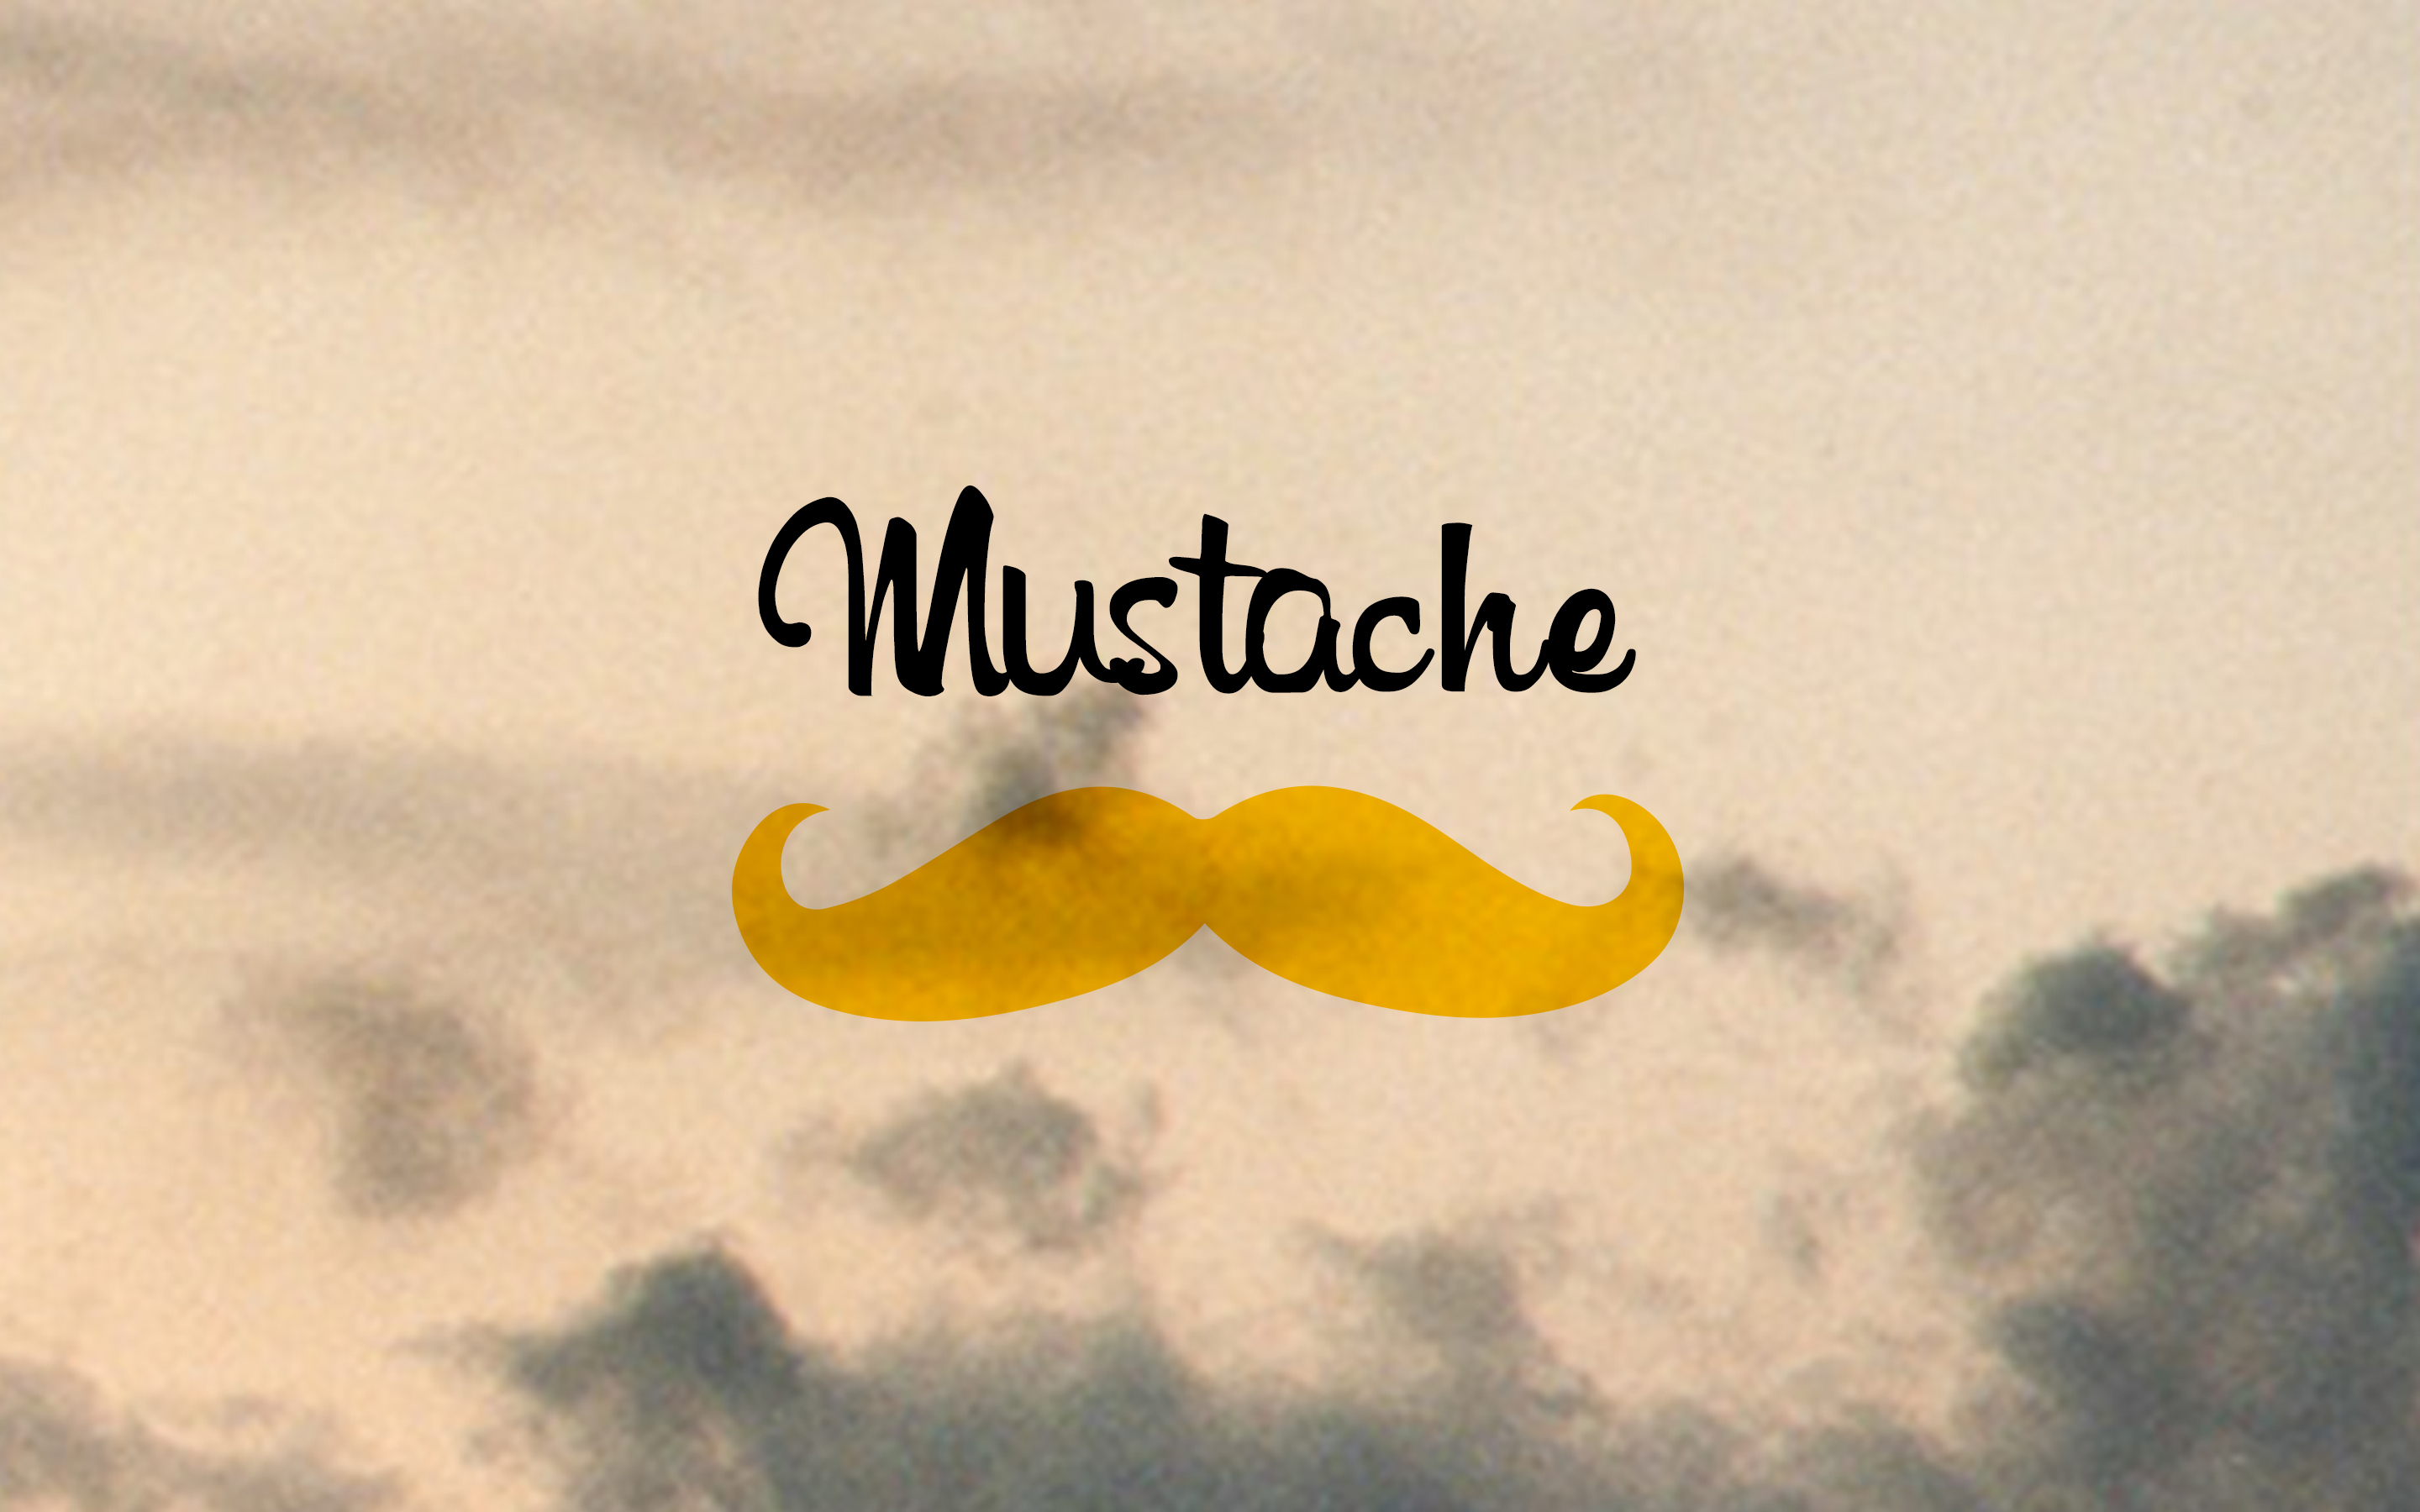 Mustache Is Good 2048x1152 Resolution